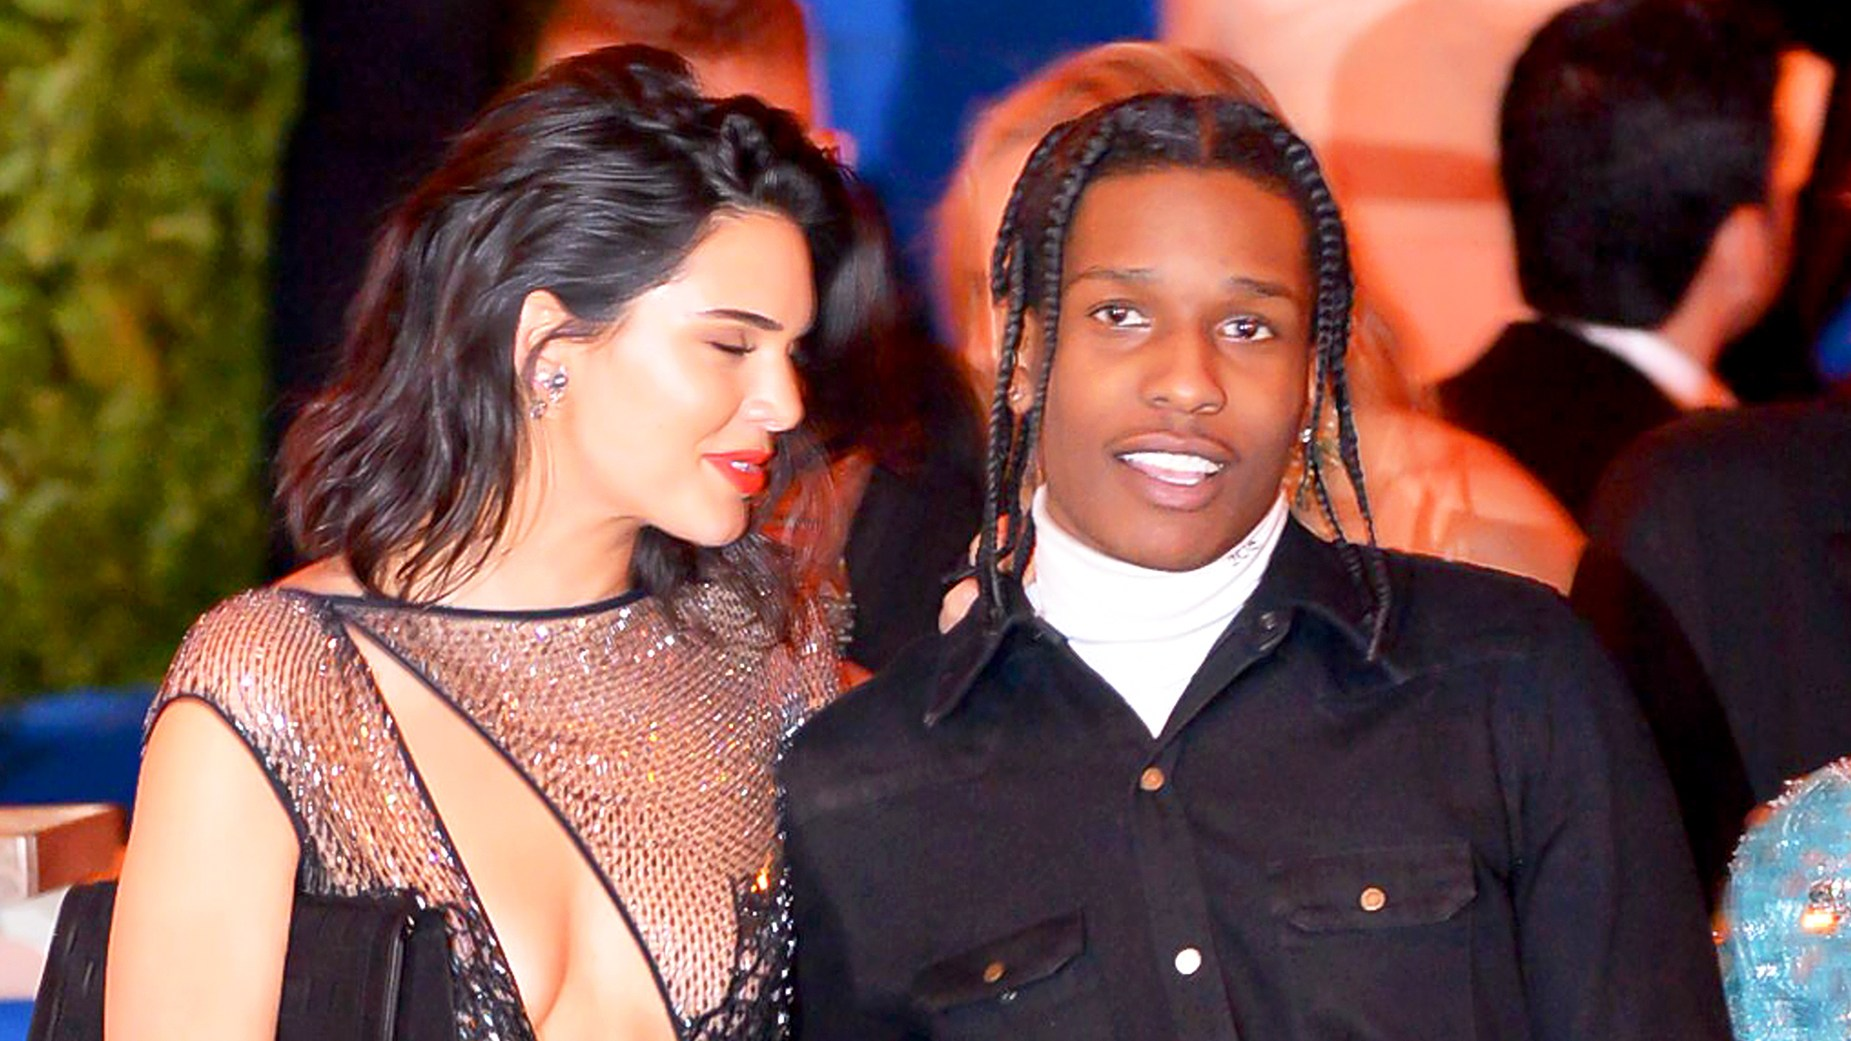 Kendell Jenner and ASAP Rocky